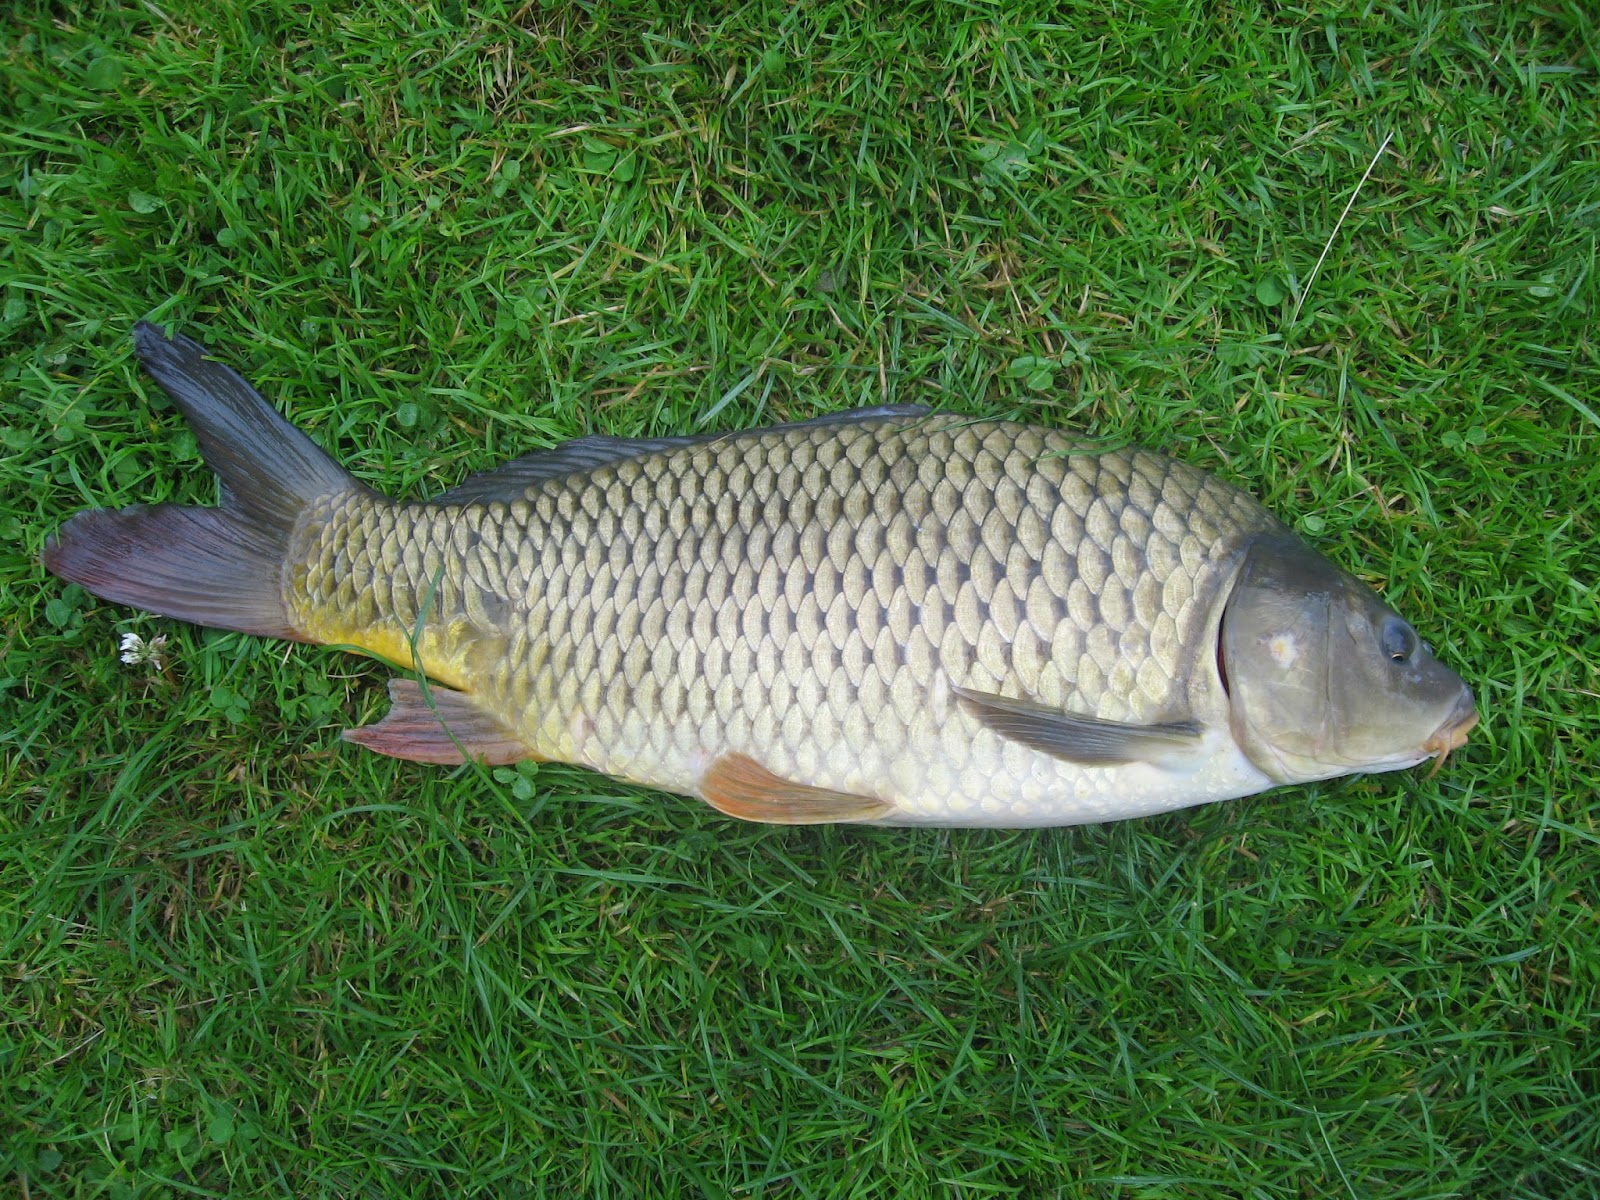 Fish common carp fish cyprinus carpio veterinary online for Carp fish pond